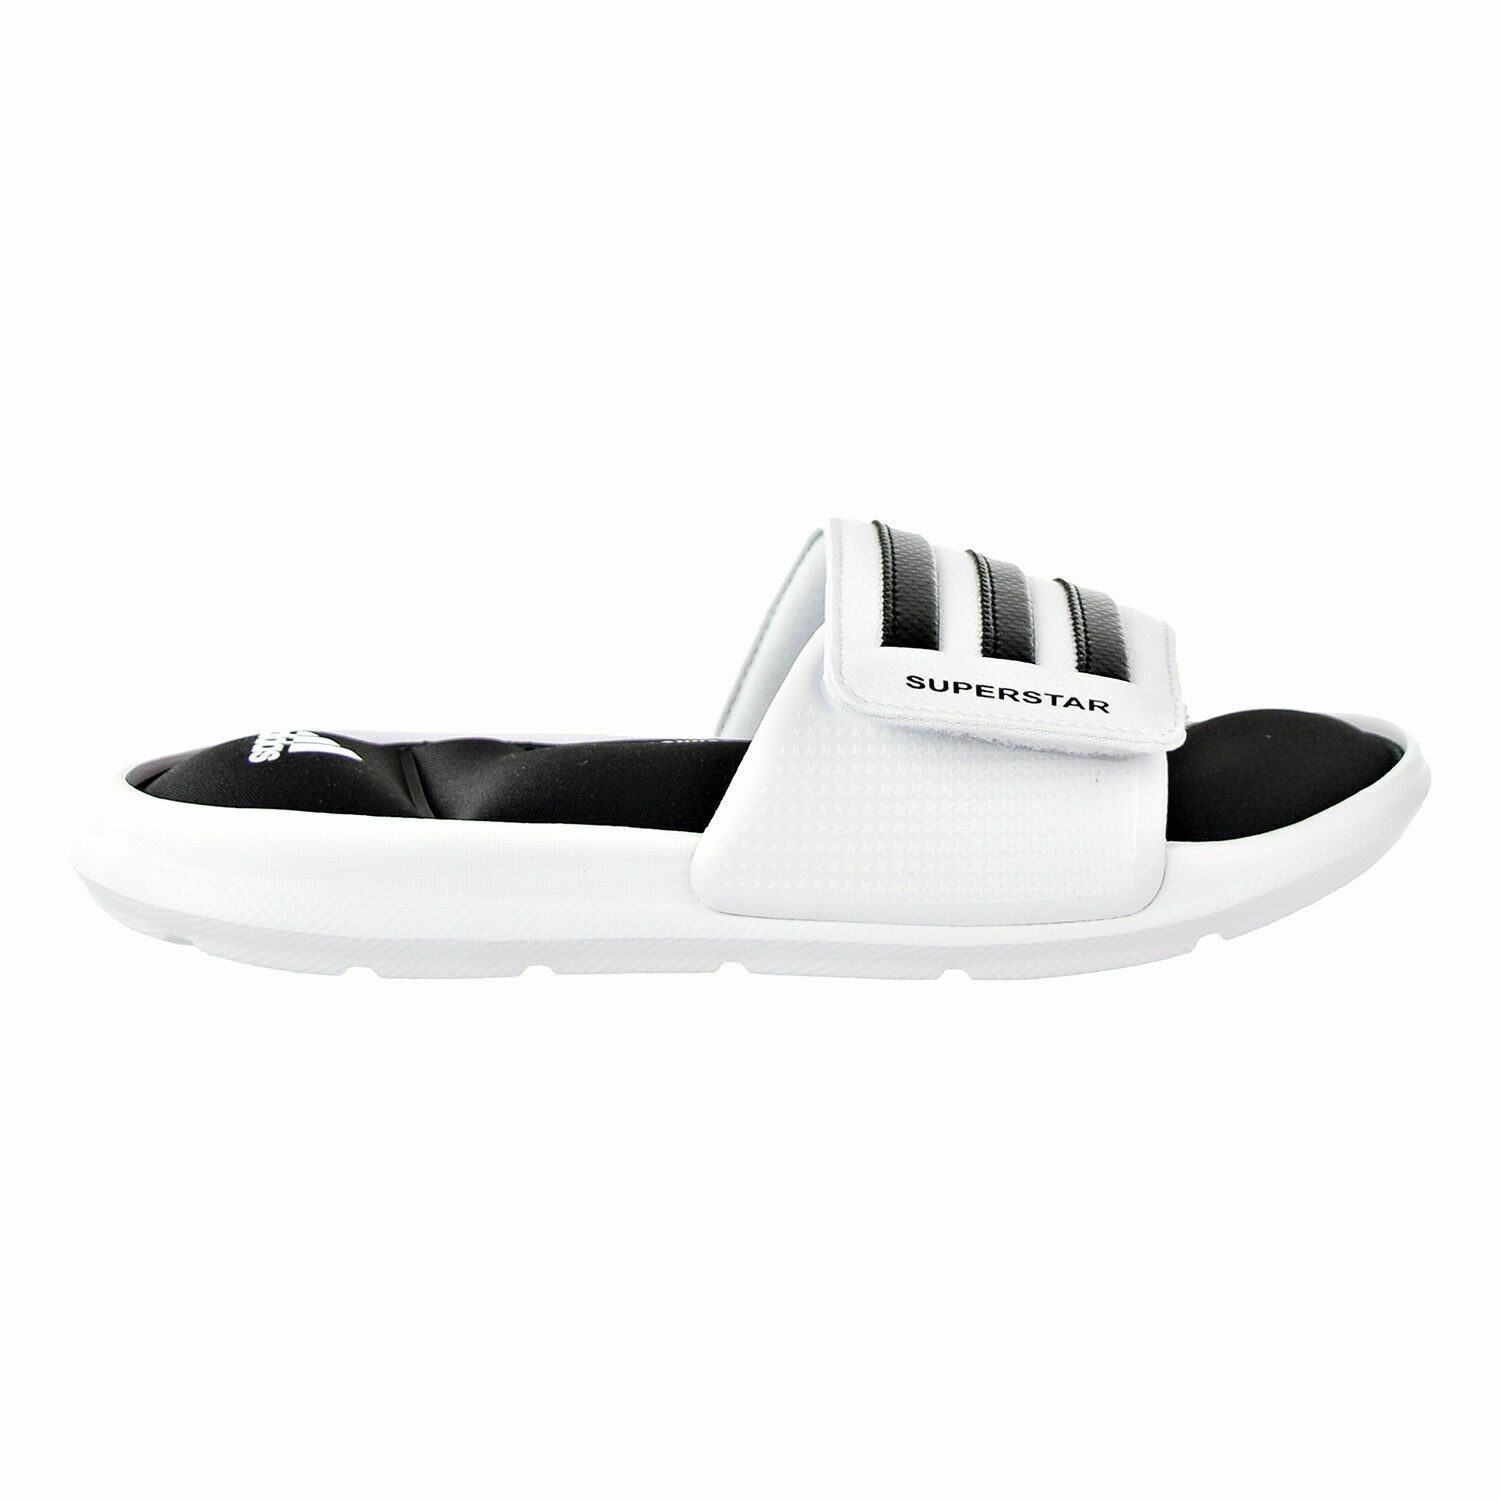 ADIDAS SUPERSTAR SURROUND MEMORY FOAM SLIDE SANDALS MEN SHOES WHITE SIZE 15 NEW image 4